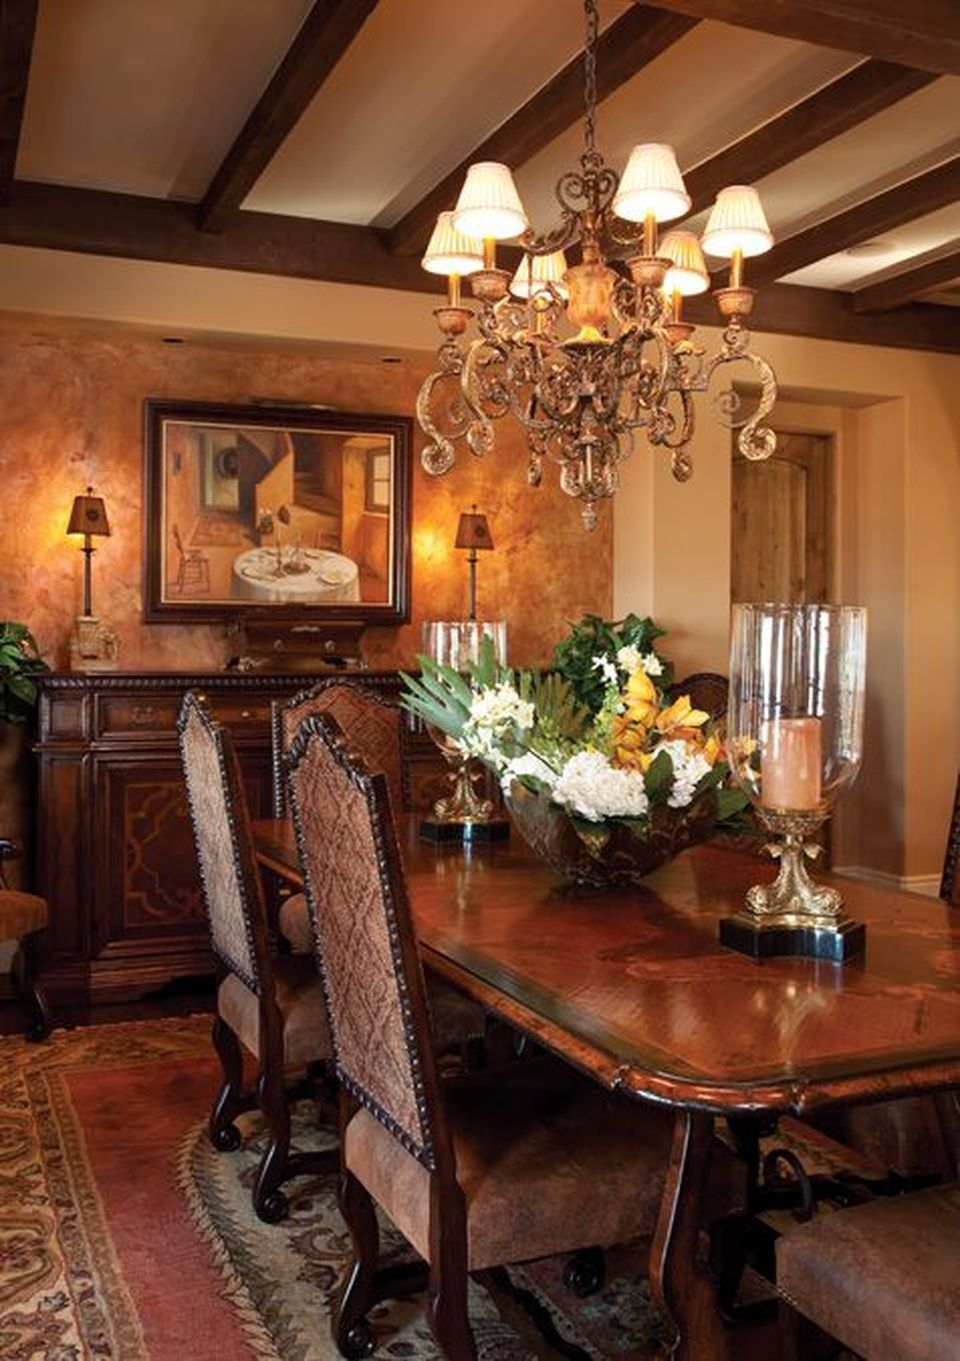 Luxury Formal Dining Room Sets: 50 Glorious And Luxury Western Dining Room Design